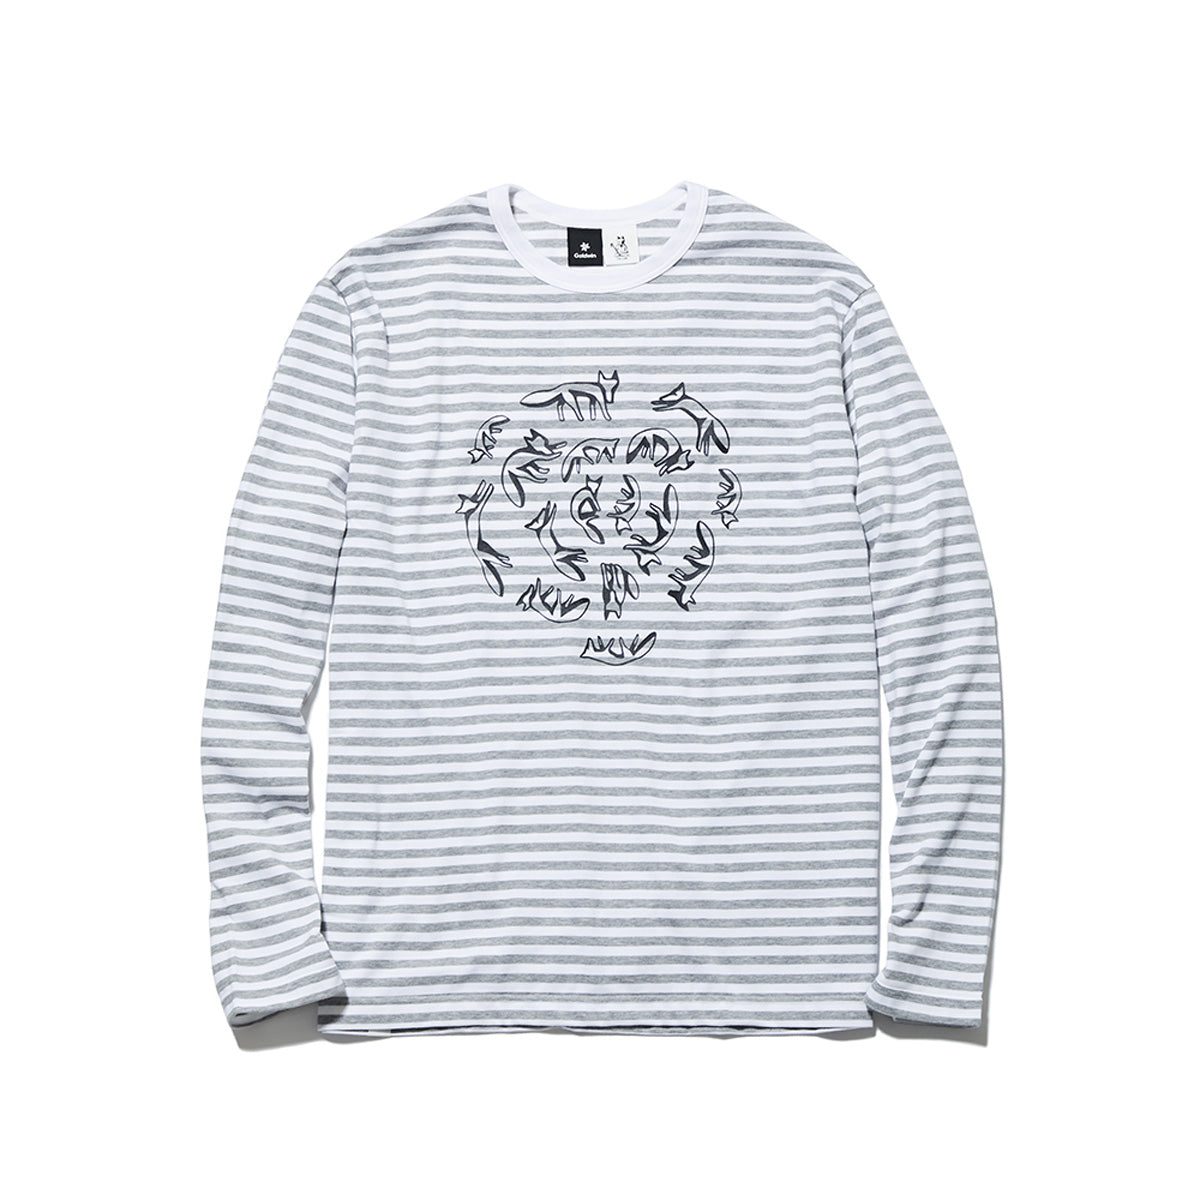 BORDER CREW NECK LONG SLEEVES HEATHER GRAY STRIPES